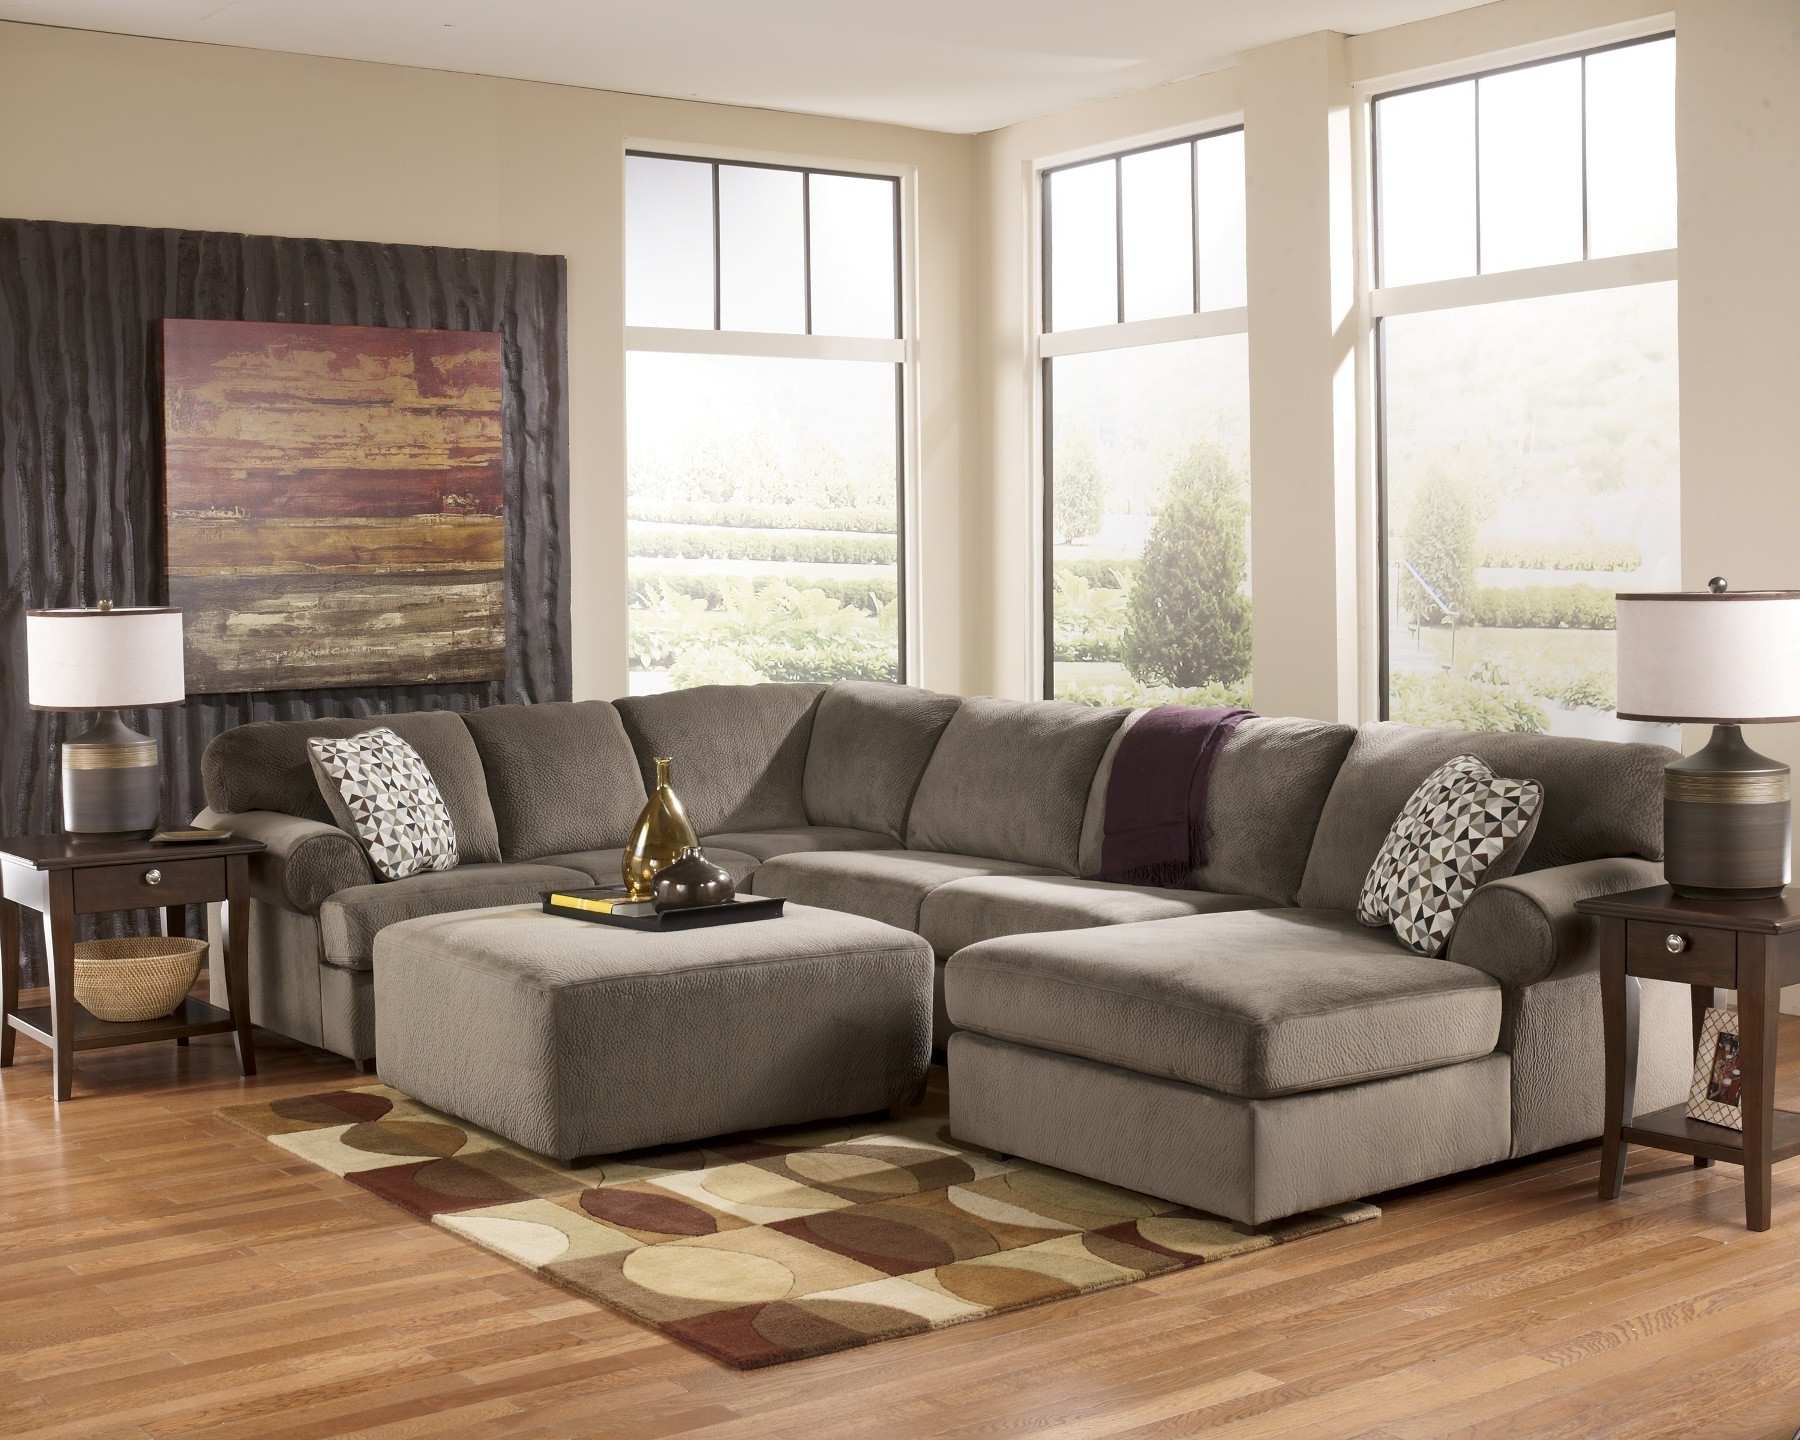 Trendy Asc Furniture – El Paso, Tx With Regard To El Paso Tx Sectional Sofas (View 3 of 20)